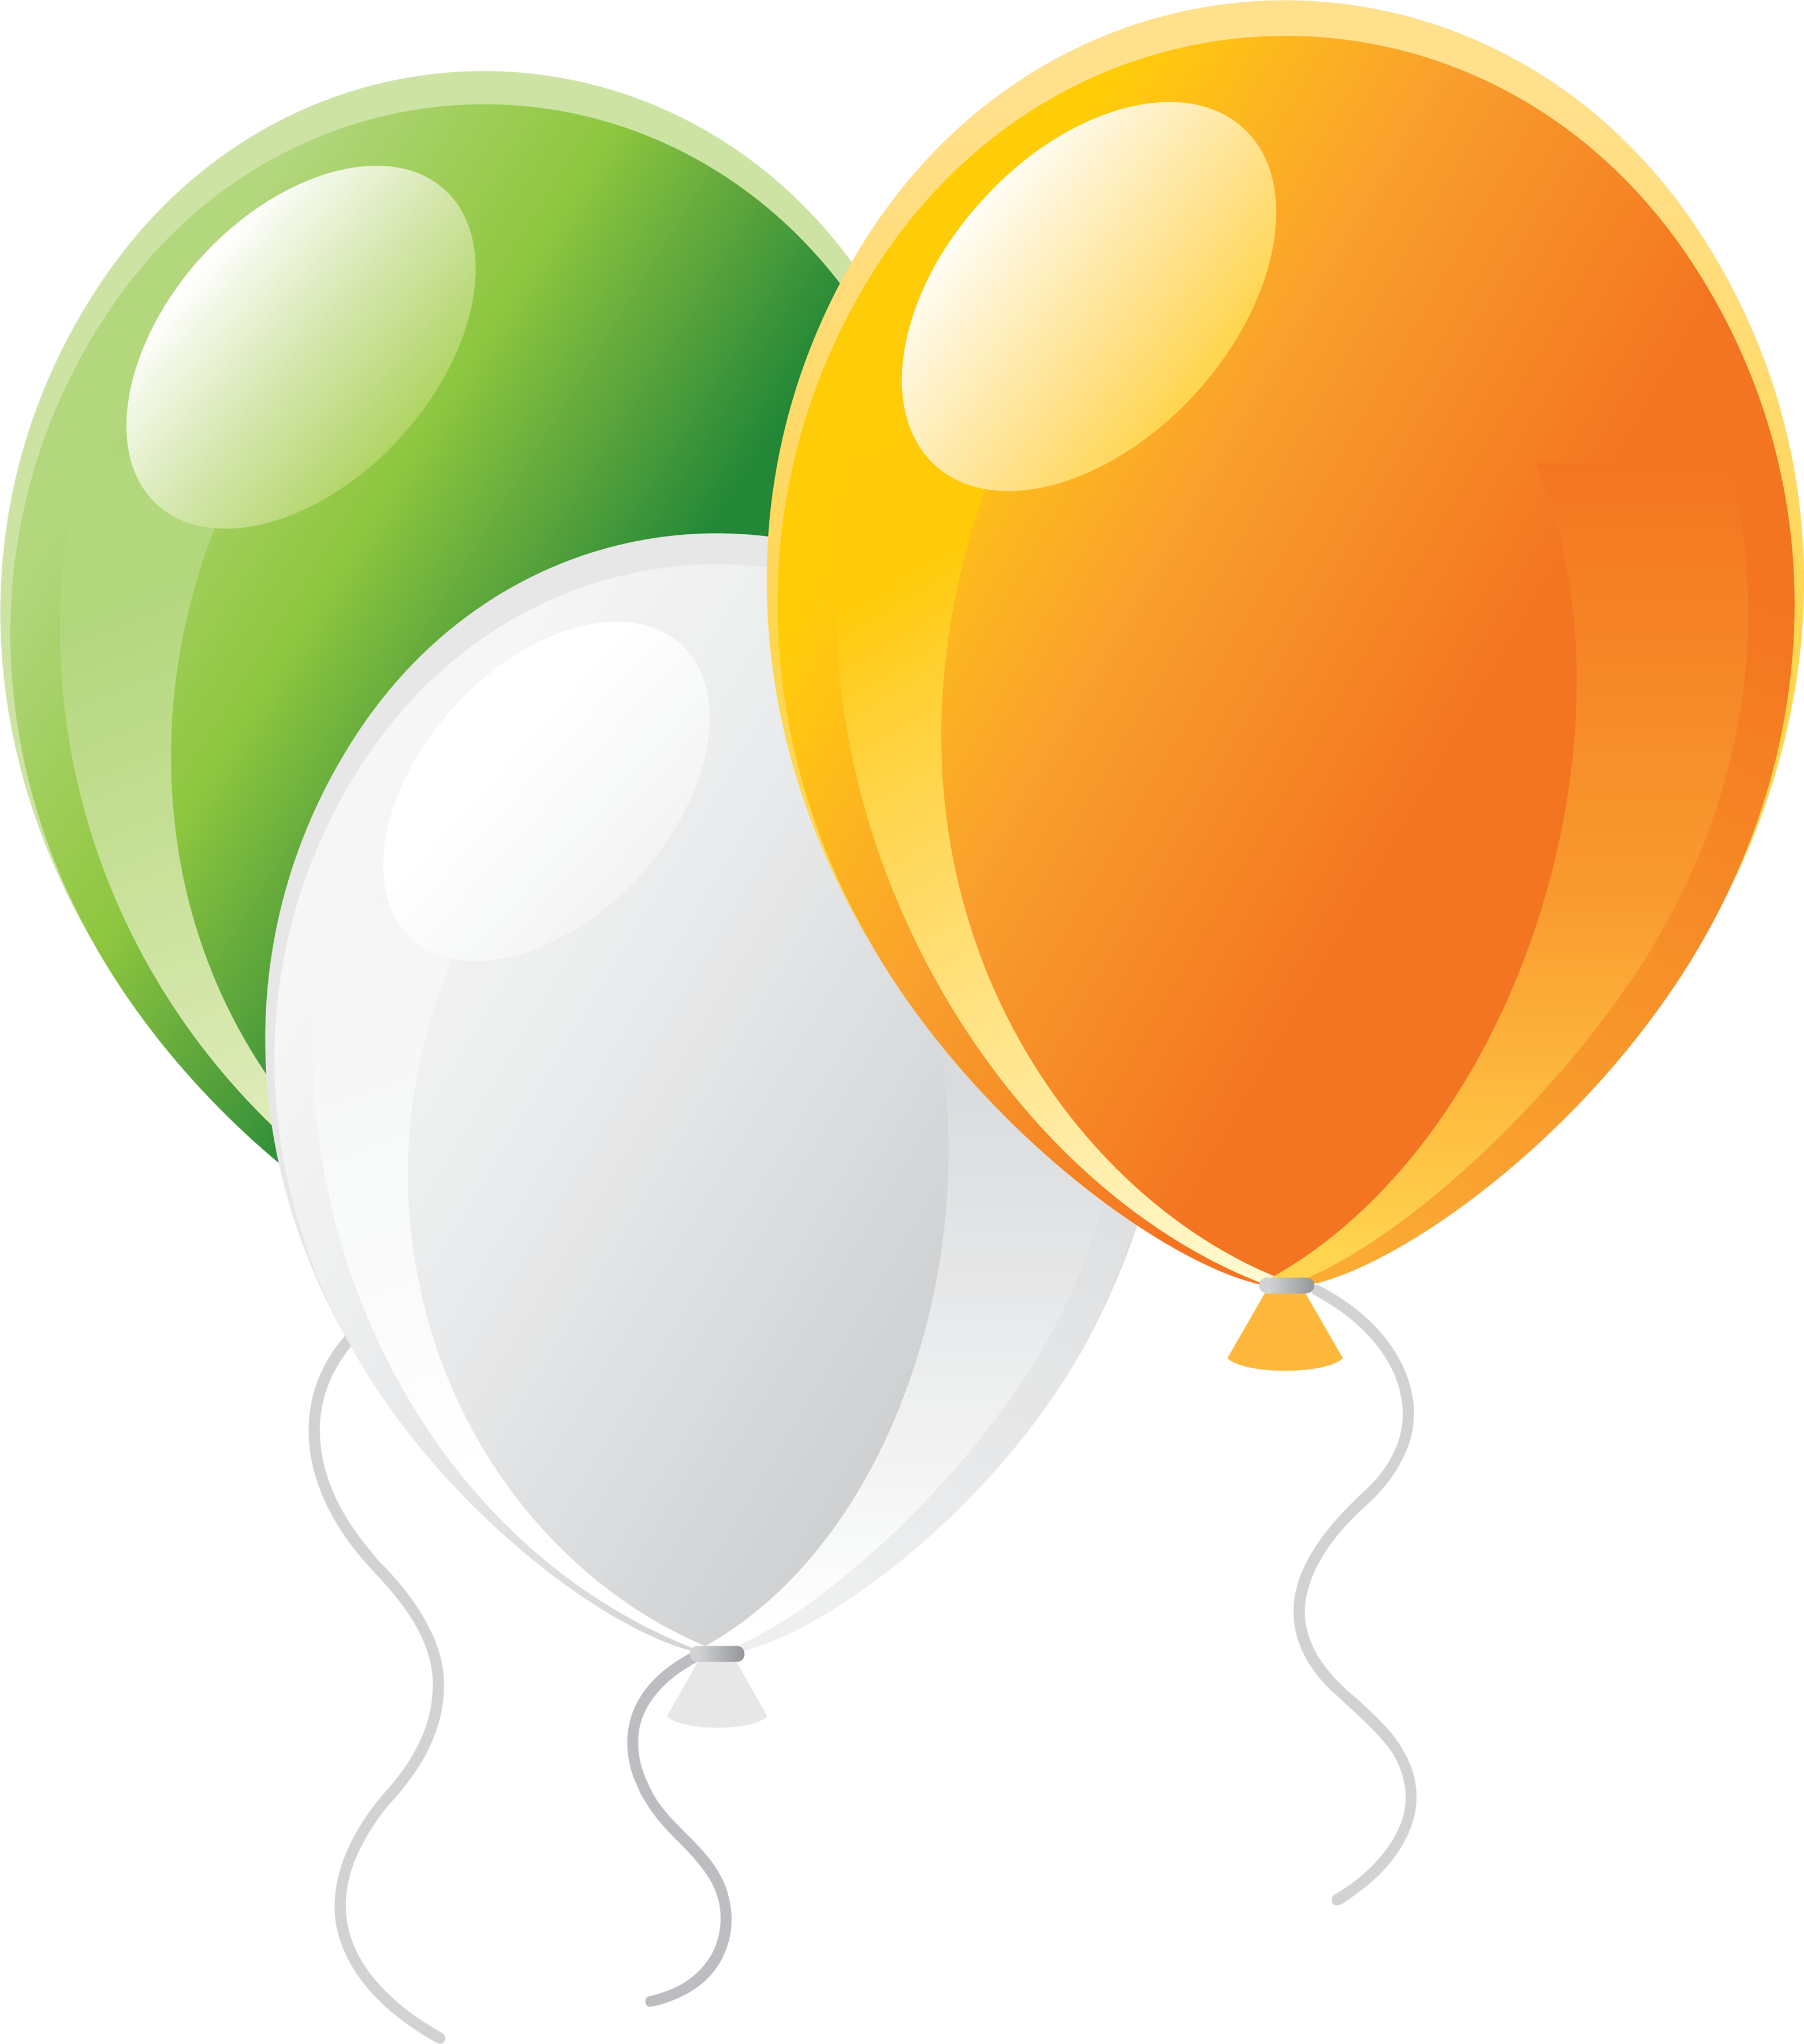 Photoshop clipart balloons PNG images transparency PNG download